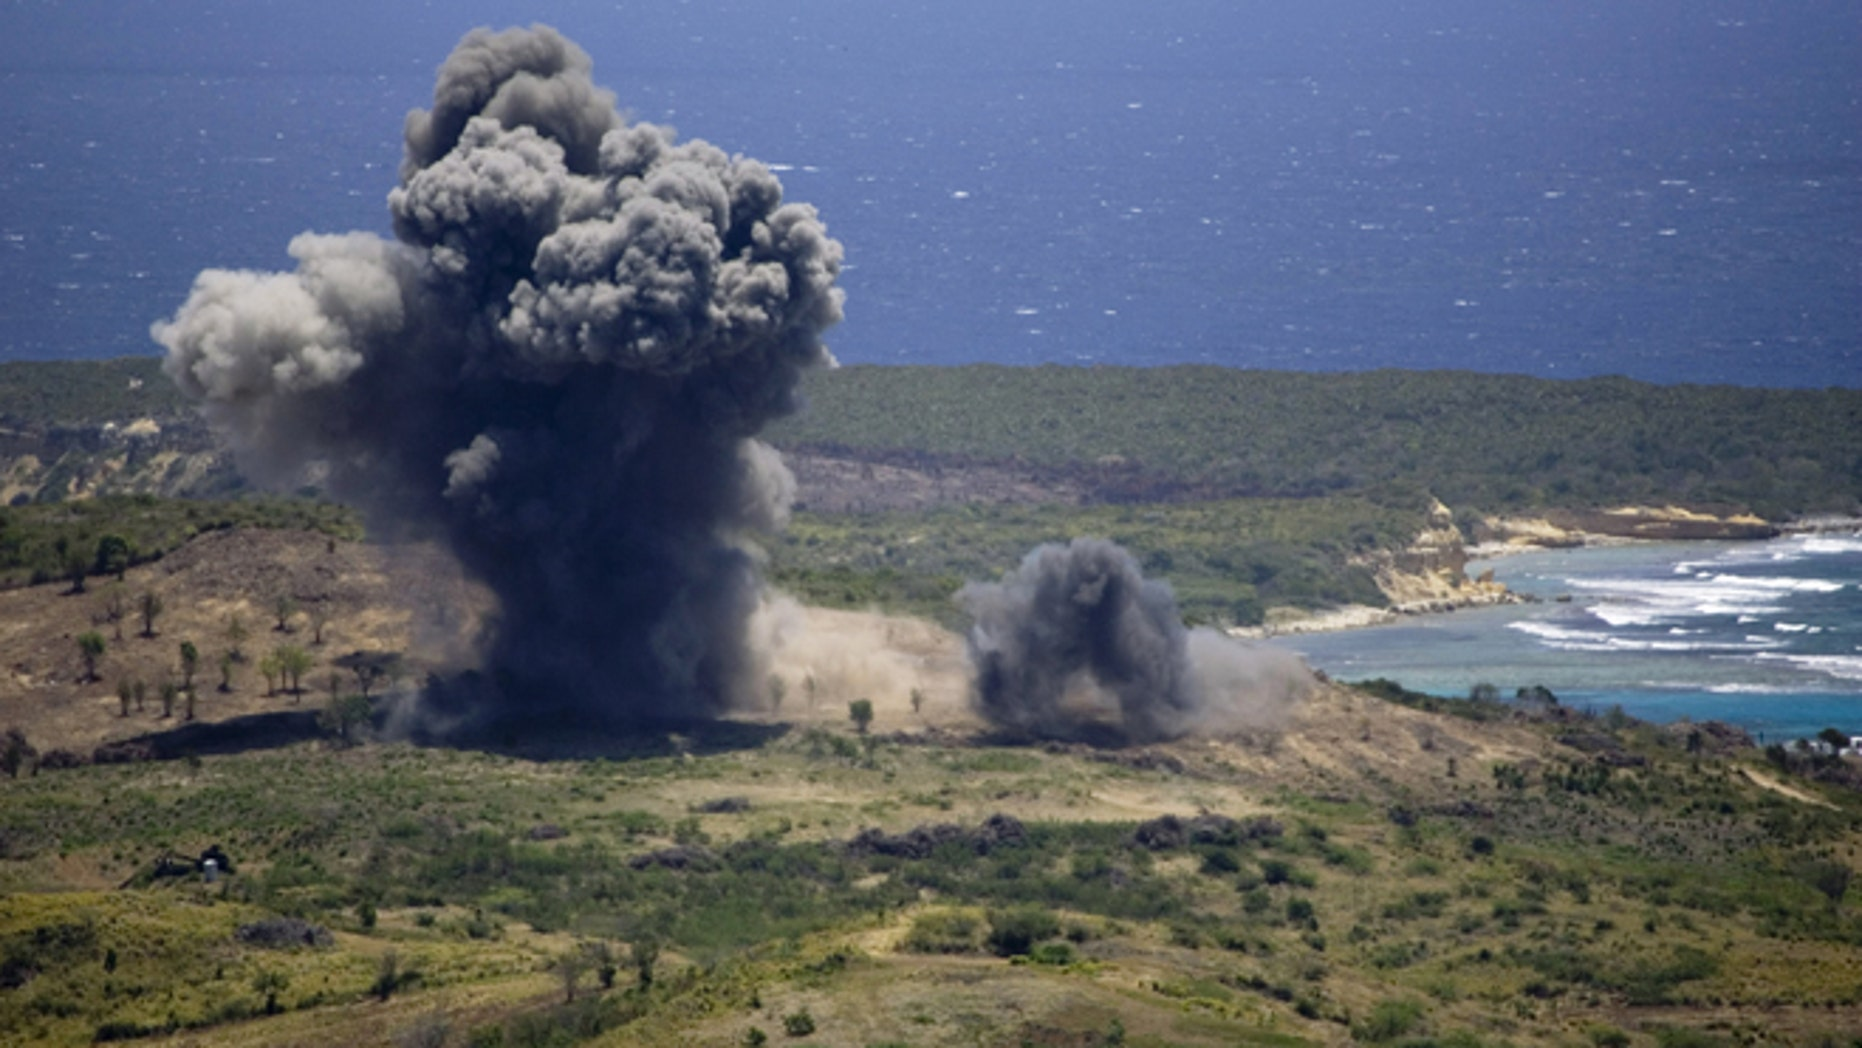 FILE - In this April 17, 2008 file photo, unexploded ordinance is blown up in a controlled demolition at the former U.S. Naval Training Range on Vieques island, Puerto Rico. A U.S. Agency has issued a long-awaited report saying it did not find any proof that decades of military activity in the Puerto Rican island of Vieques sickened residents who blame the federal government for high rates of cancer, asthma and other illnesses. (AP Photo/Brennan Linsley, File)